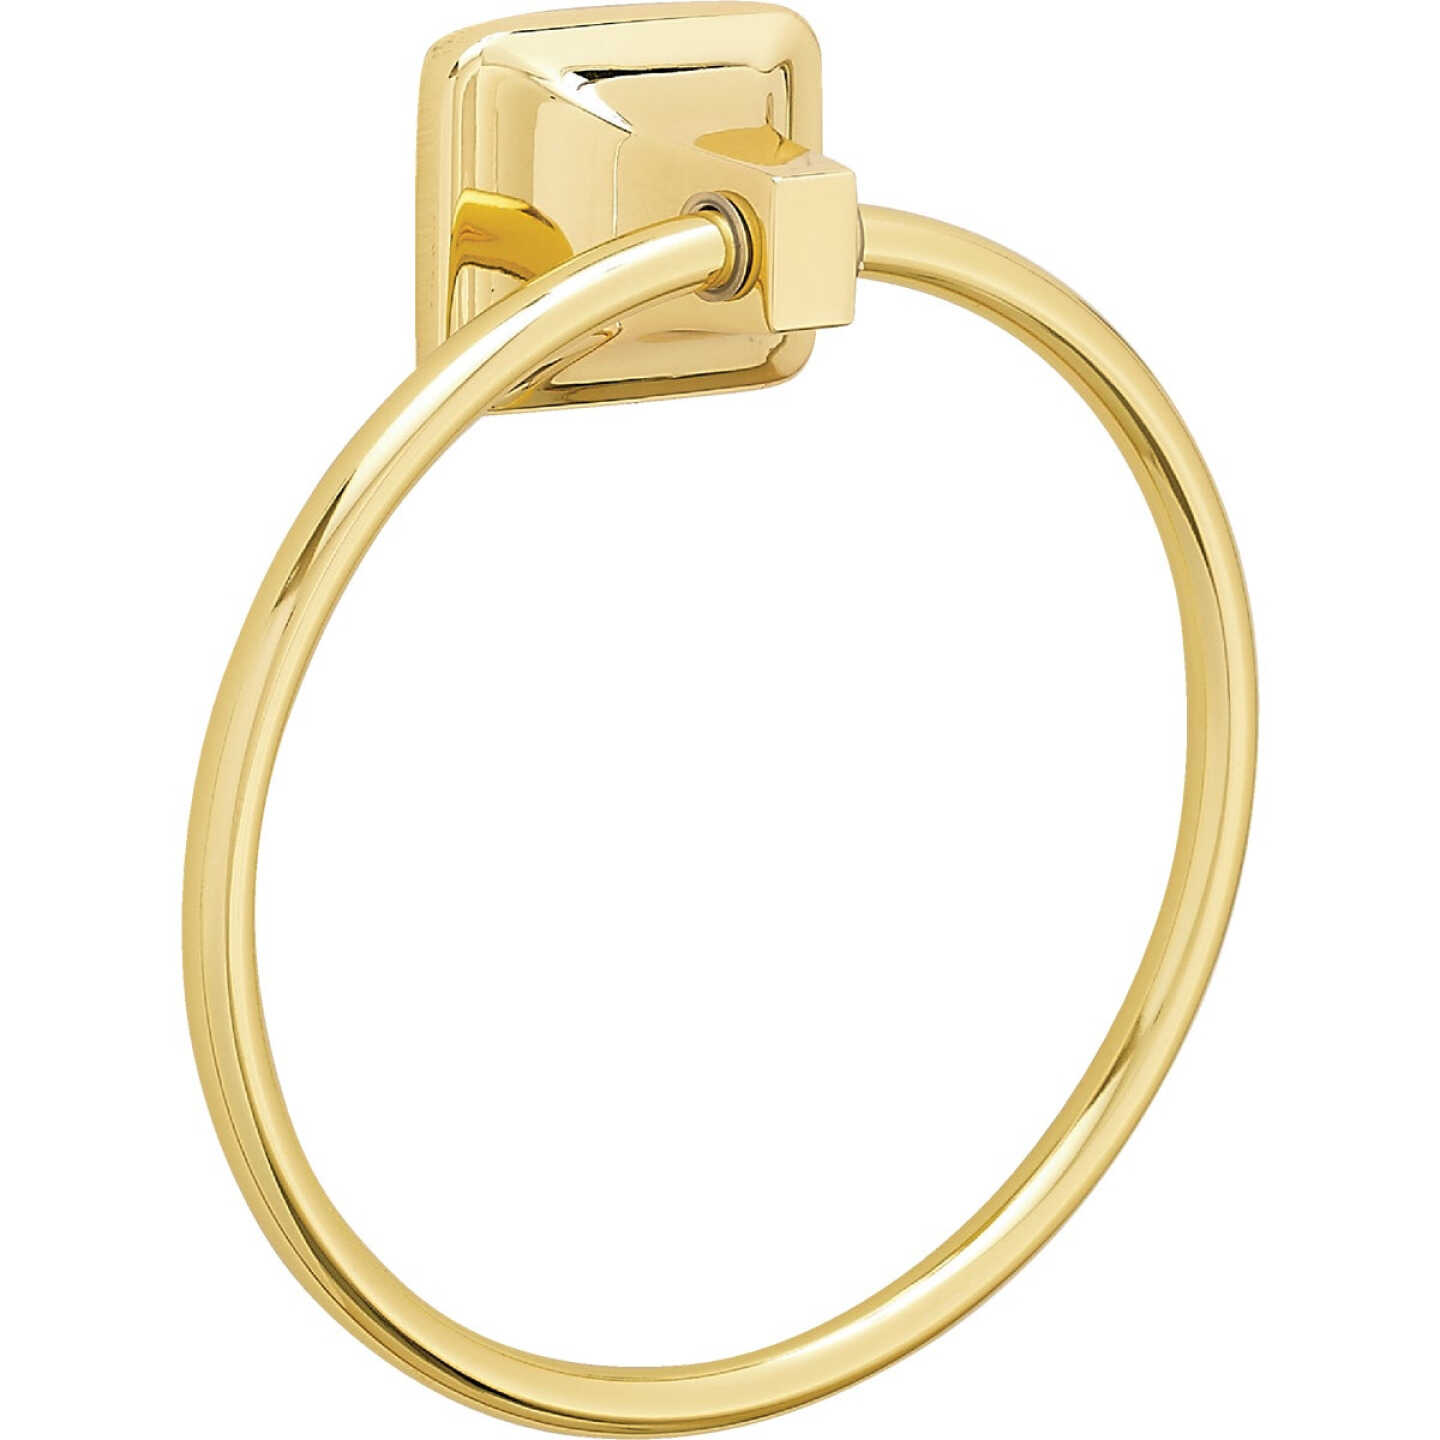 Home Impressions Brass Towel Ring Image 4